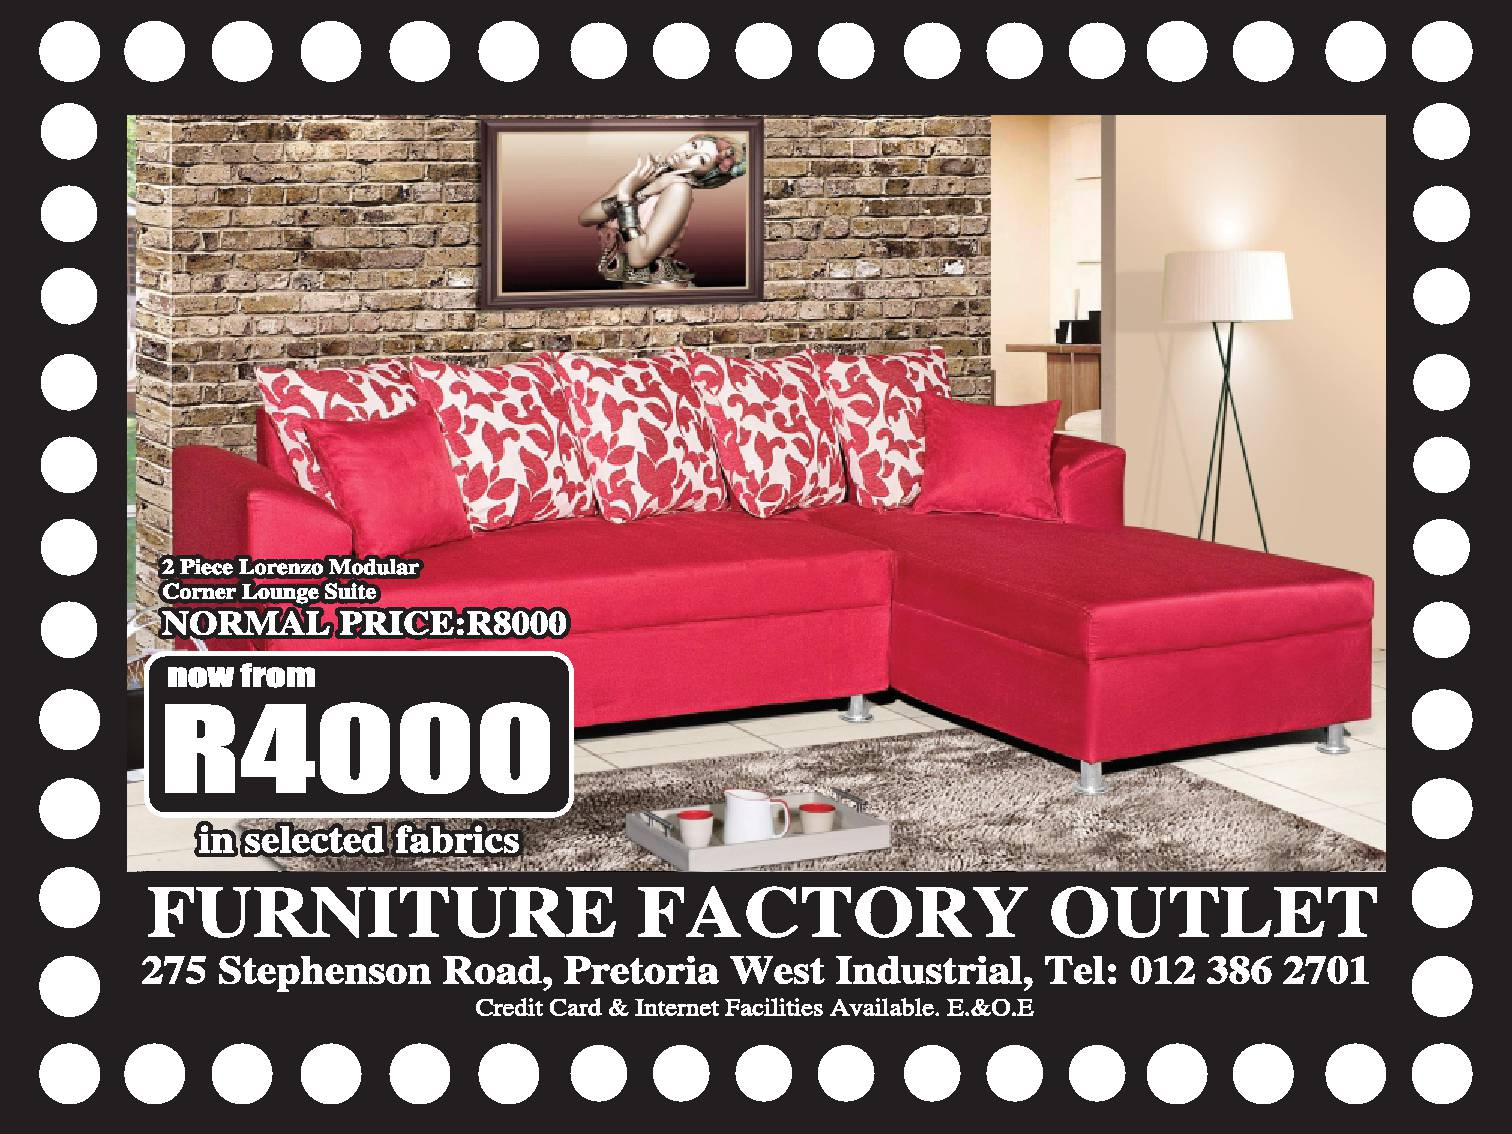 Furniture Factory Outlet Pretoria Junk Mail Business Directory